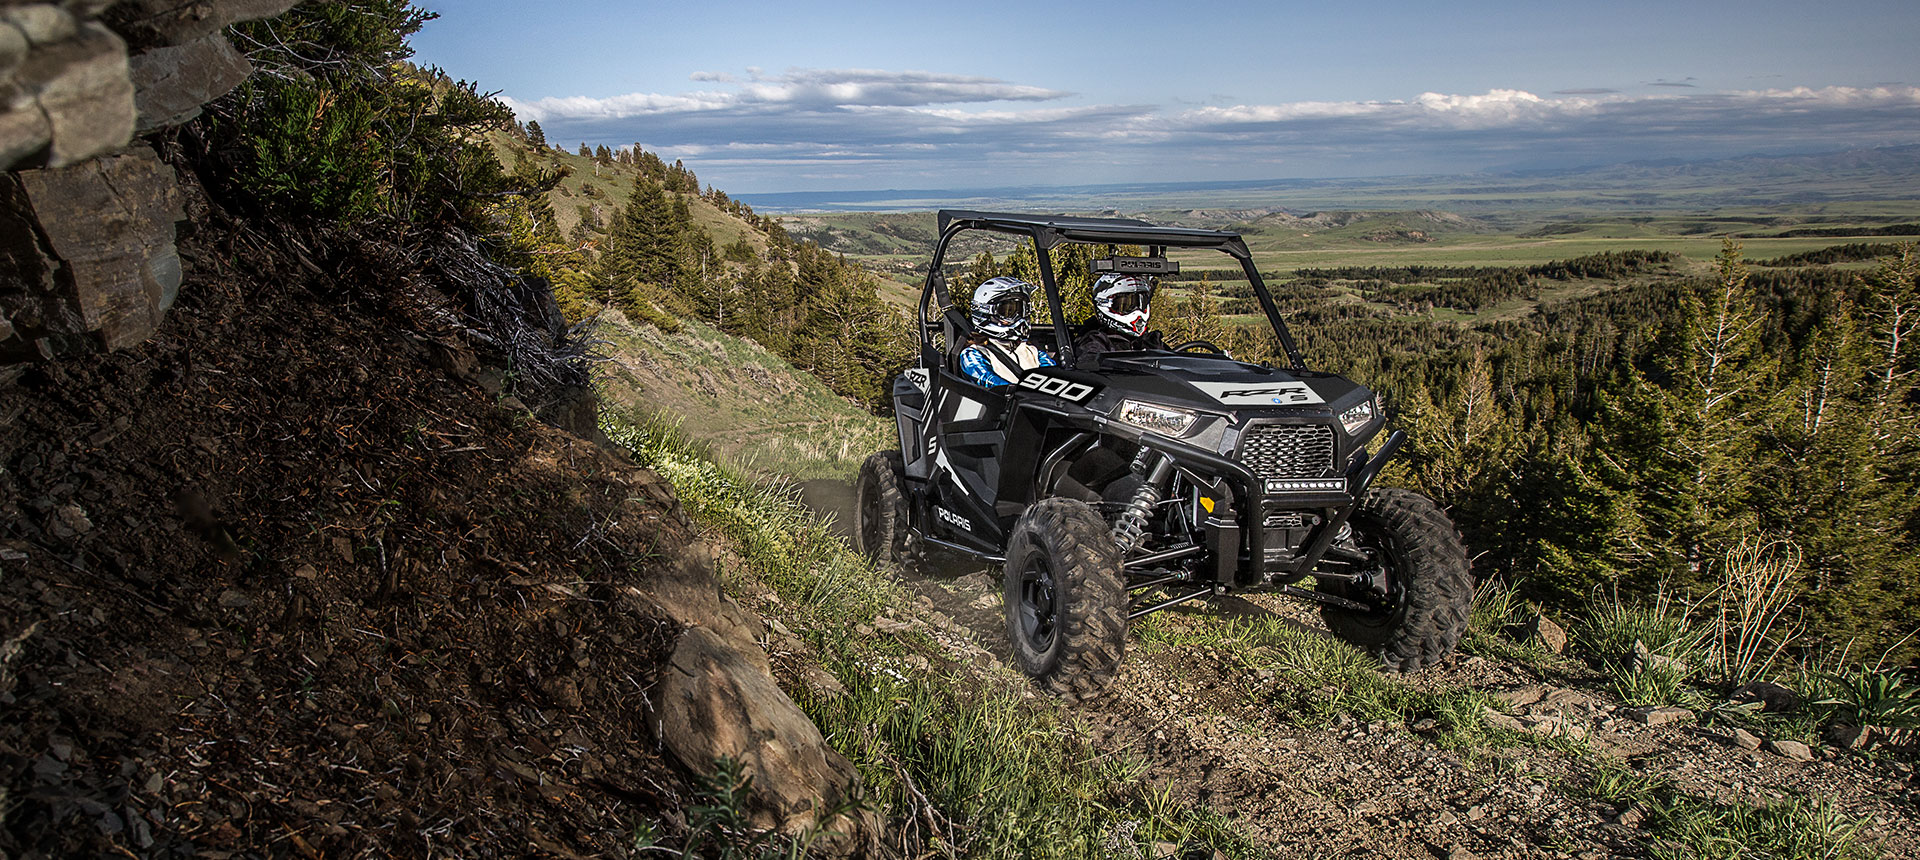 2019 Polaris RZR S 900 EPS in Kirksville, Missouri